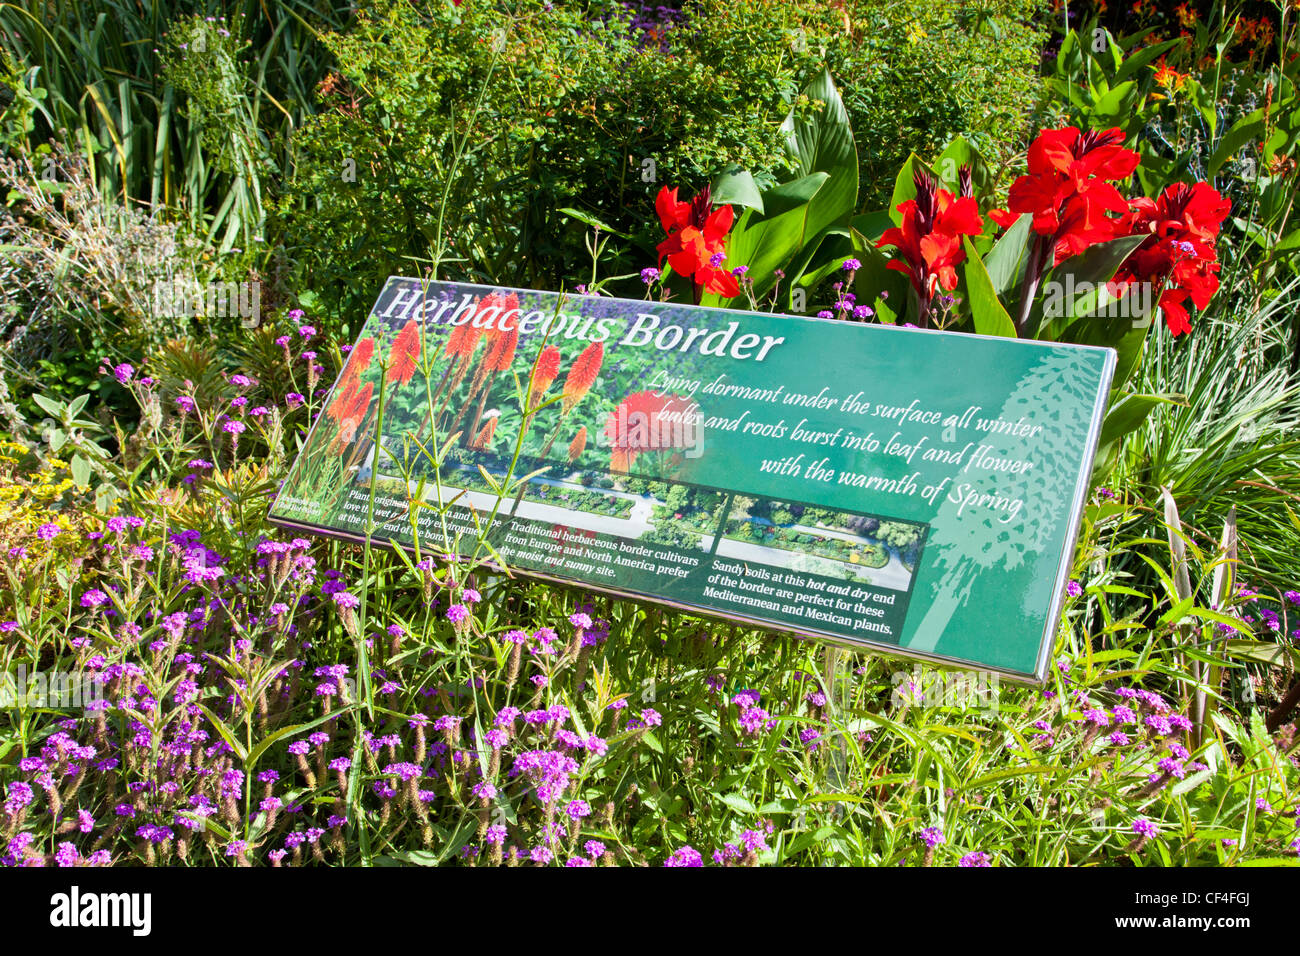 The herbaceous border in Hagley Park, Christchurch, New Zealand, in late summer, with sign. - Stock Image